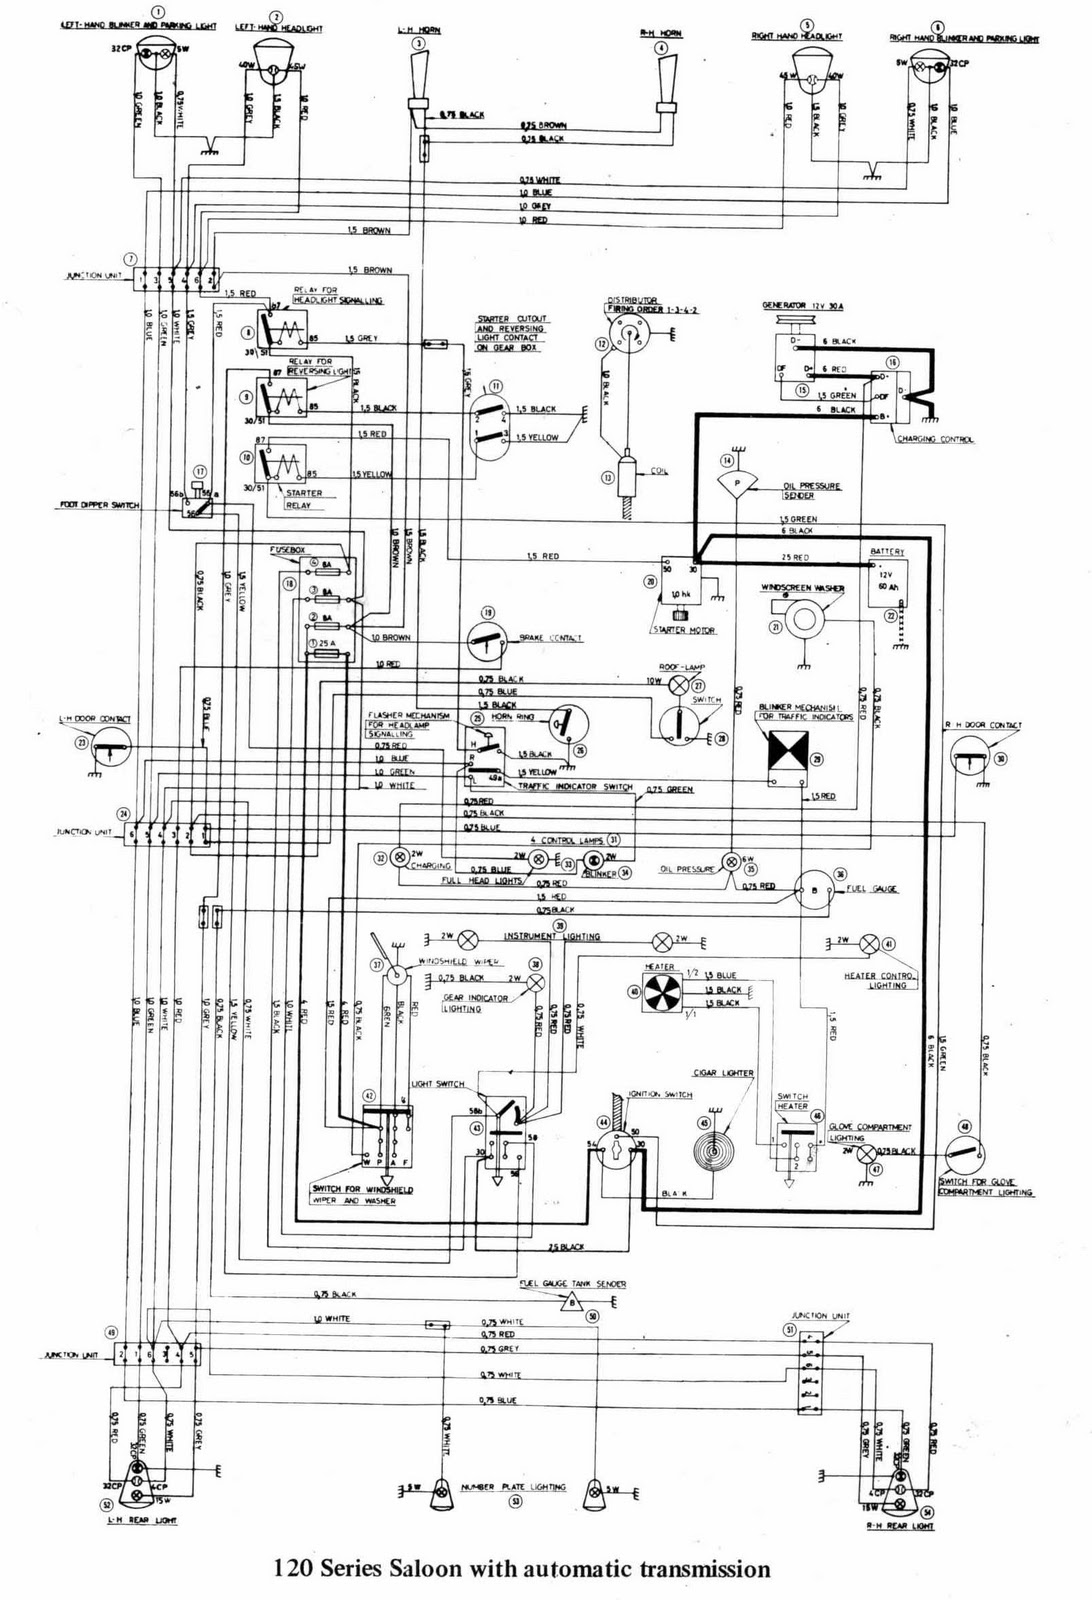 Volvo 850 A C Wiring Diagram Radio Amusing Penta 431b Images Best Image Semi Truck Engine